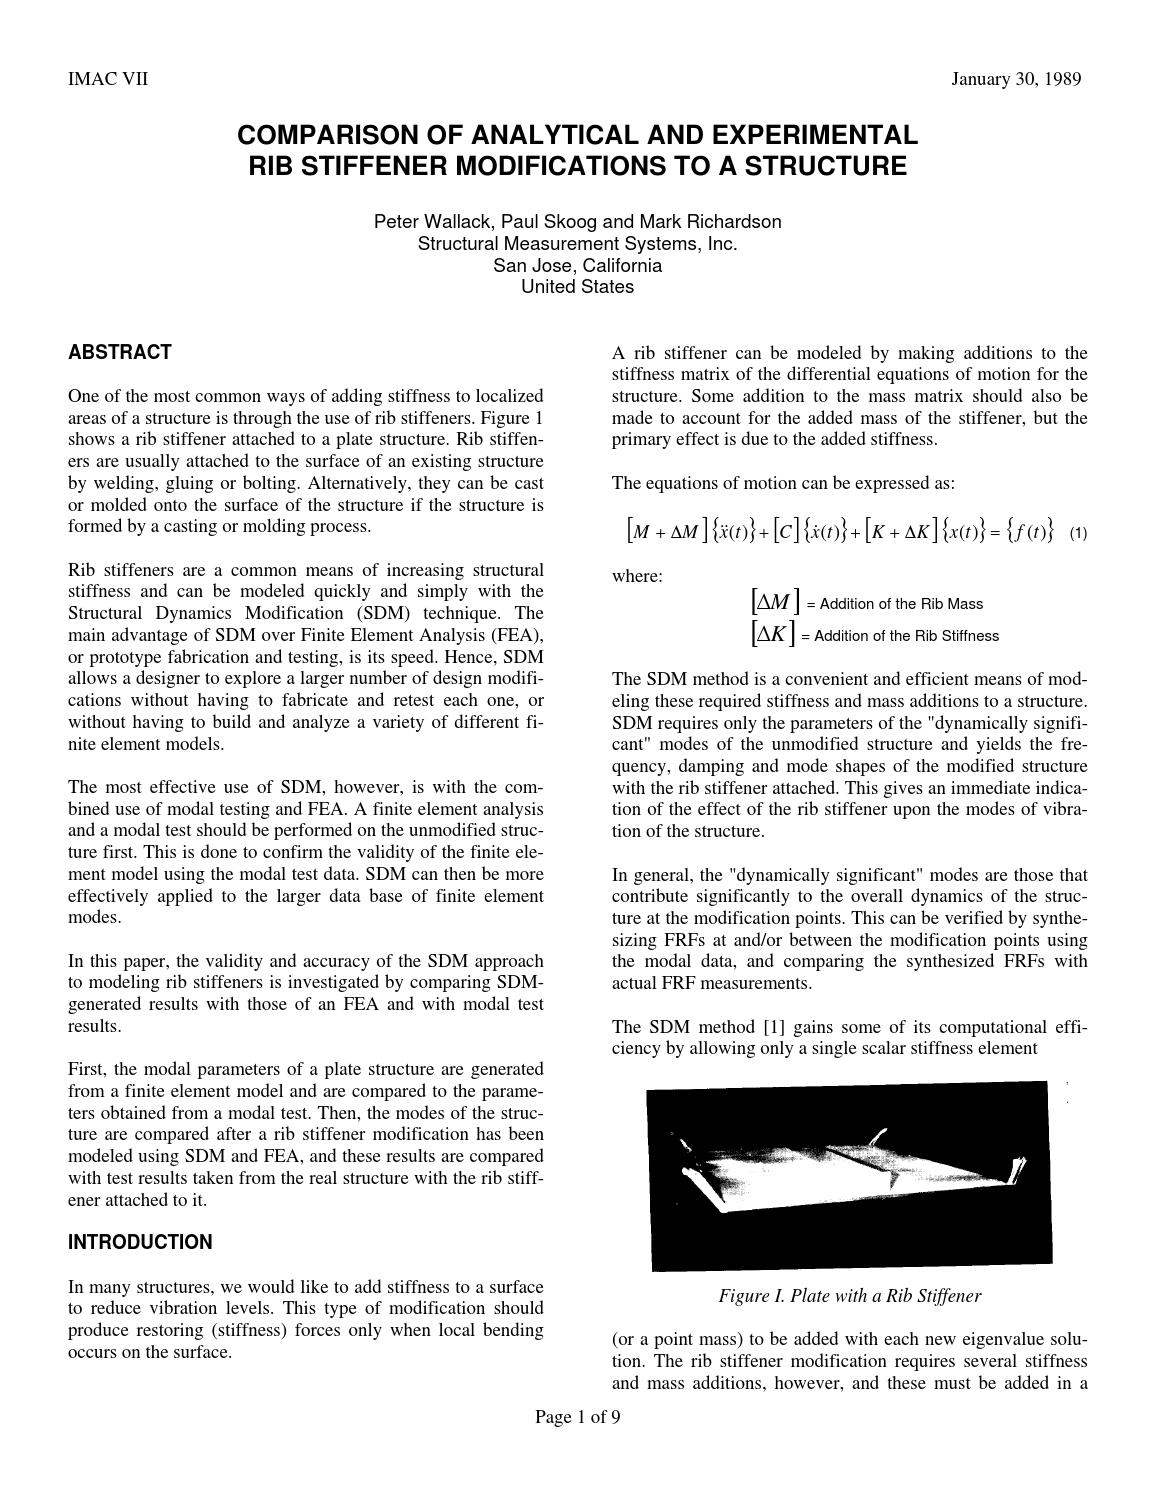 Paper 14 - Comparison of Analytical and Experimental Rib